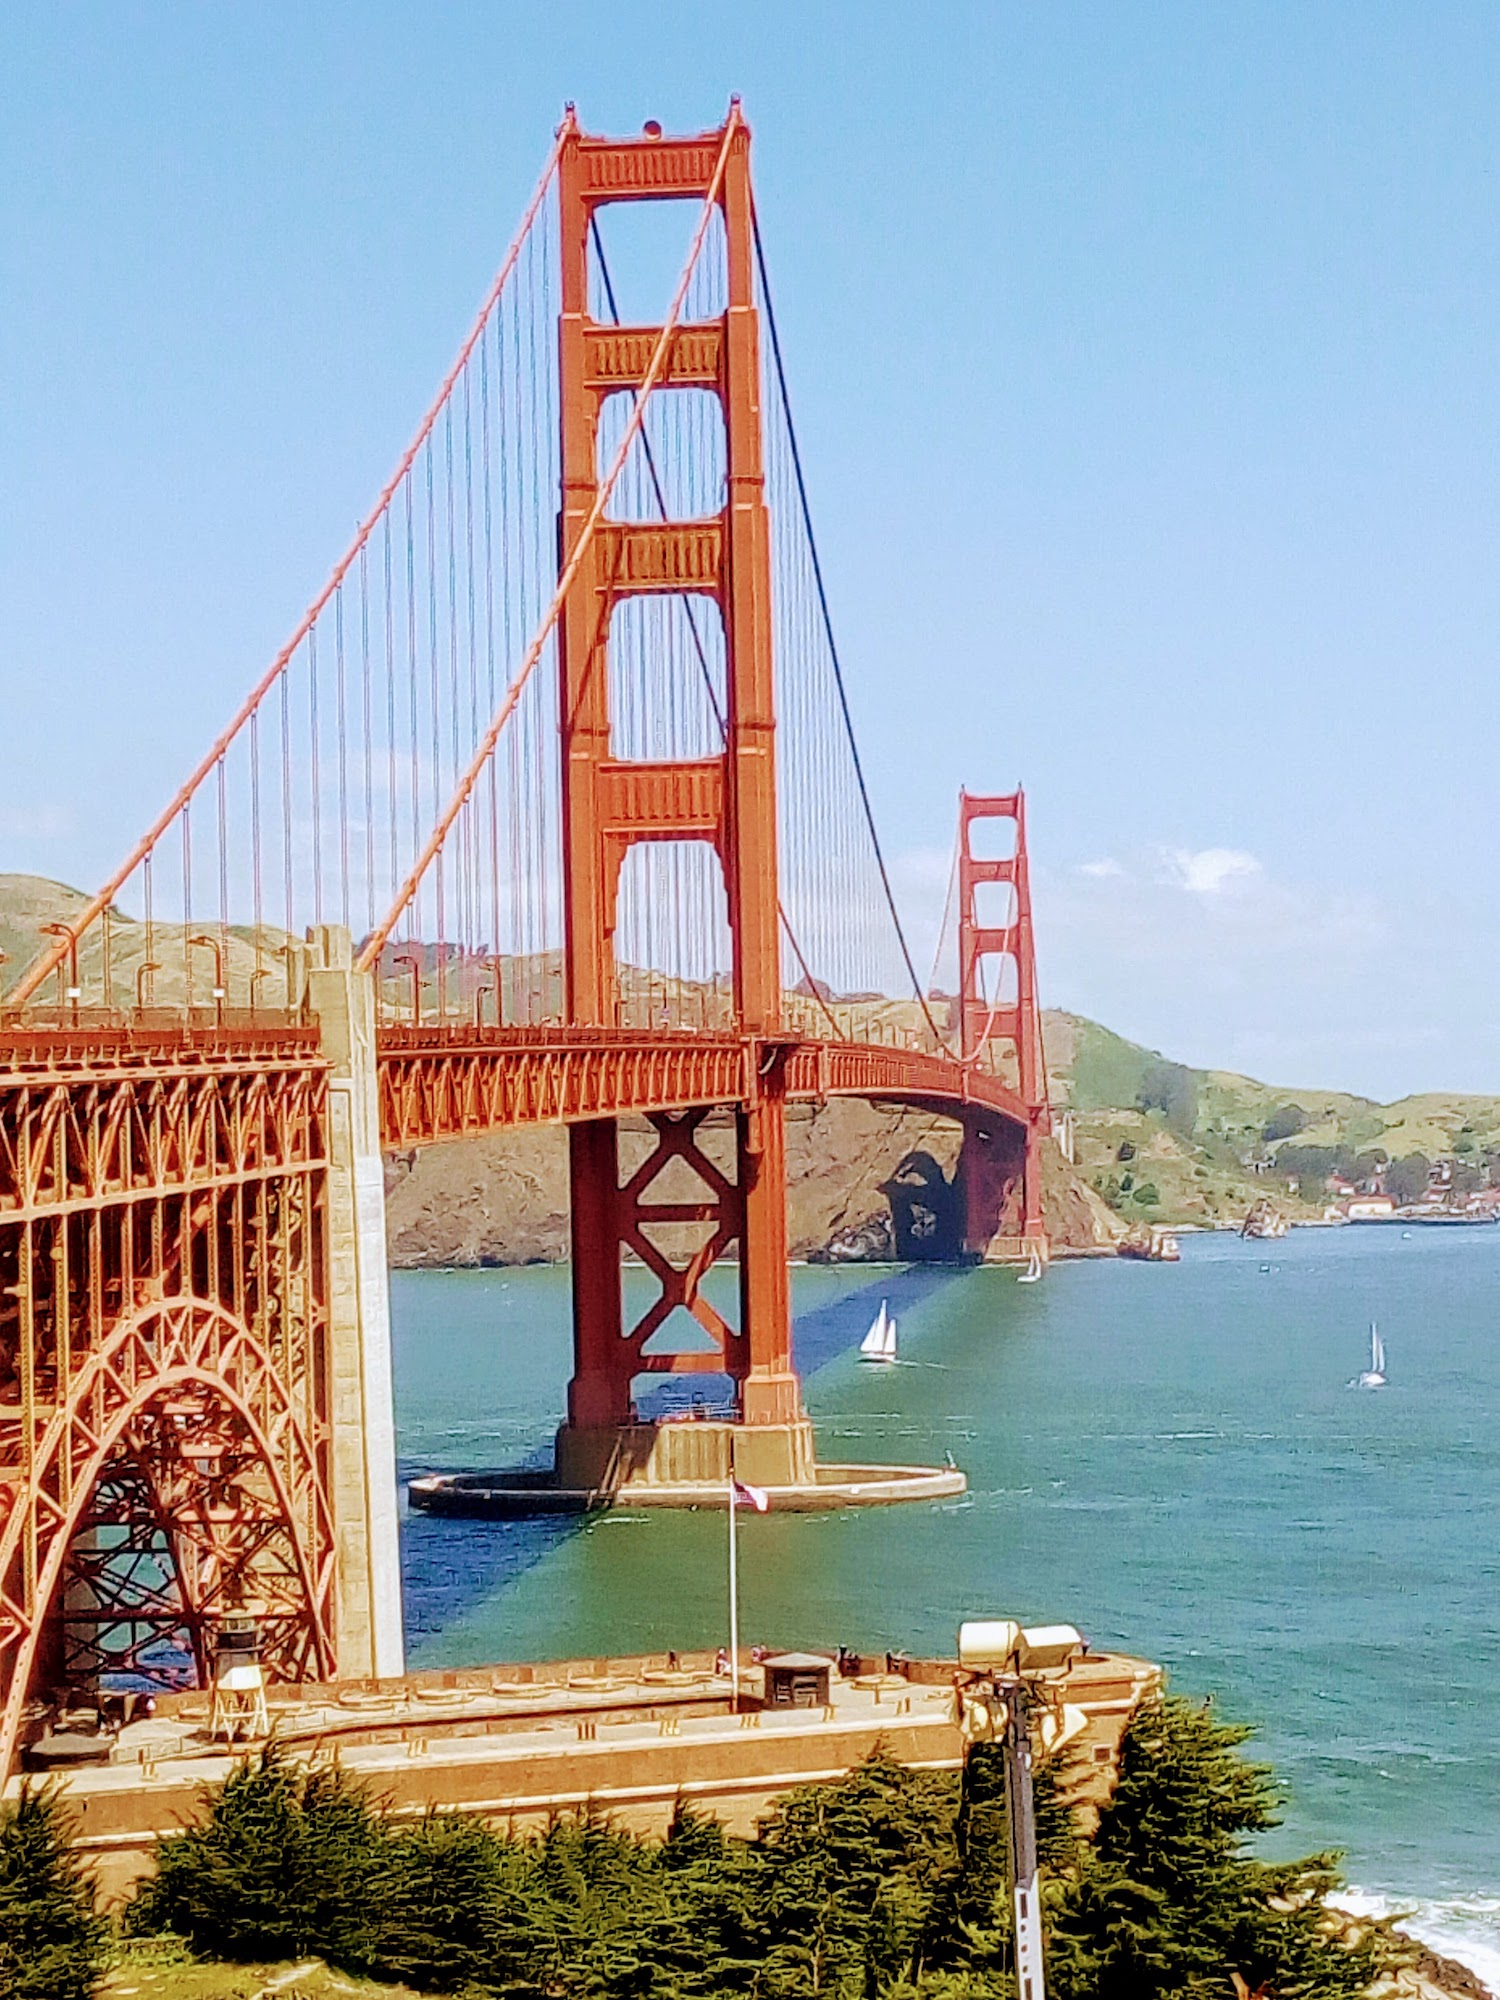 San Francisco Bay Area - the Bridge